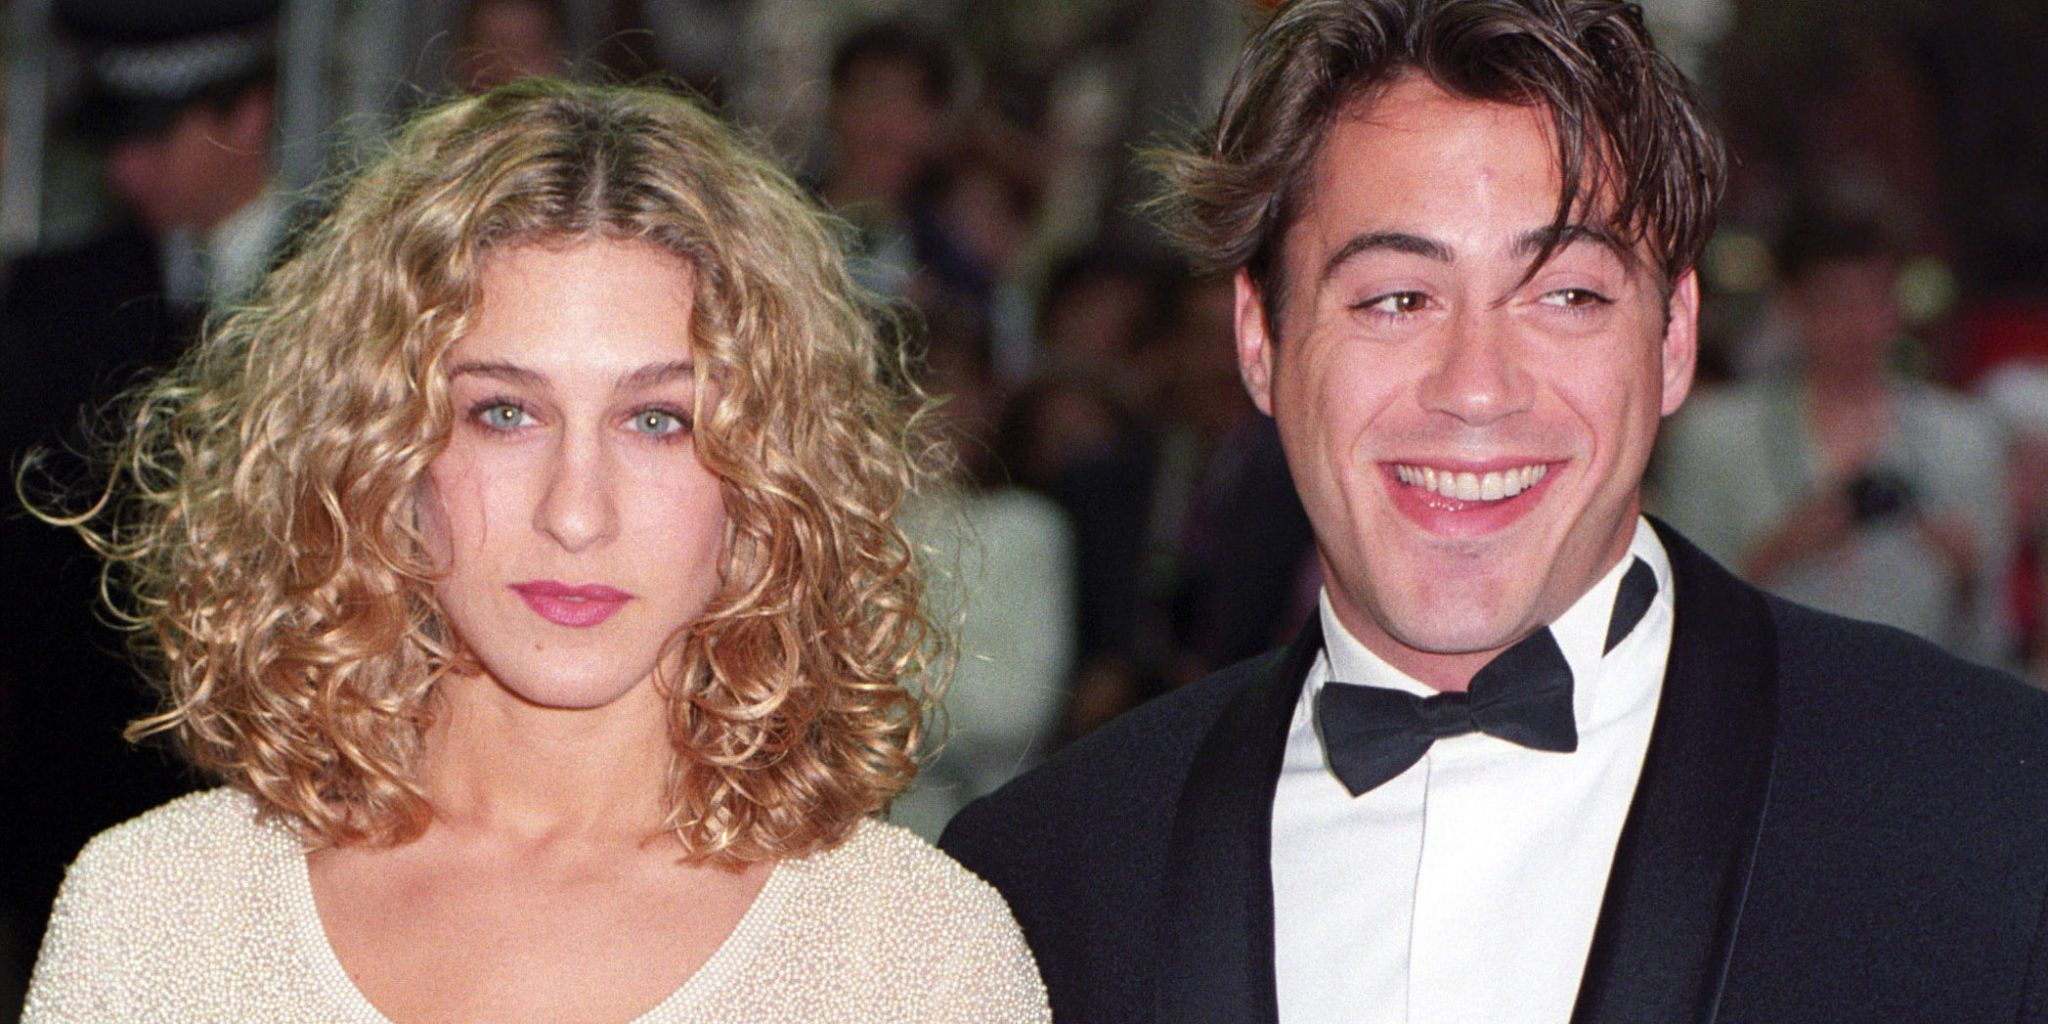 Robert Downey Jr. Finally Got His Sex and the City Ending With Sarah Jessica Parker After 24 Years